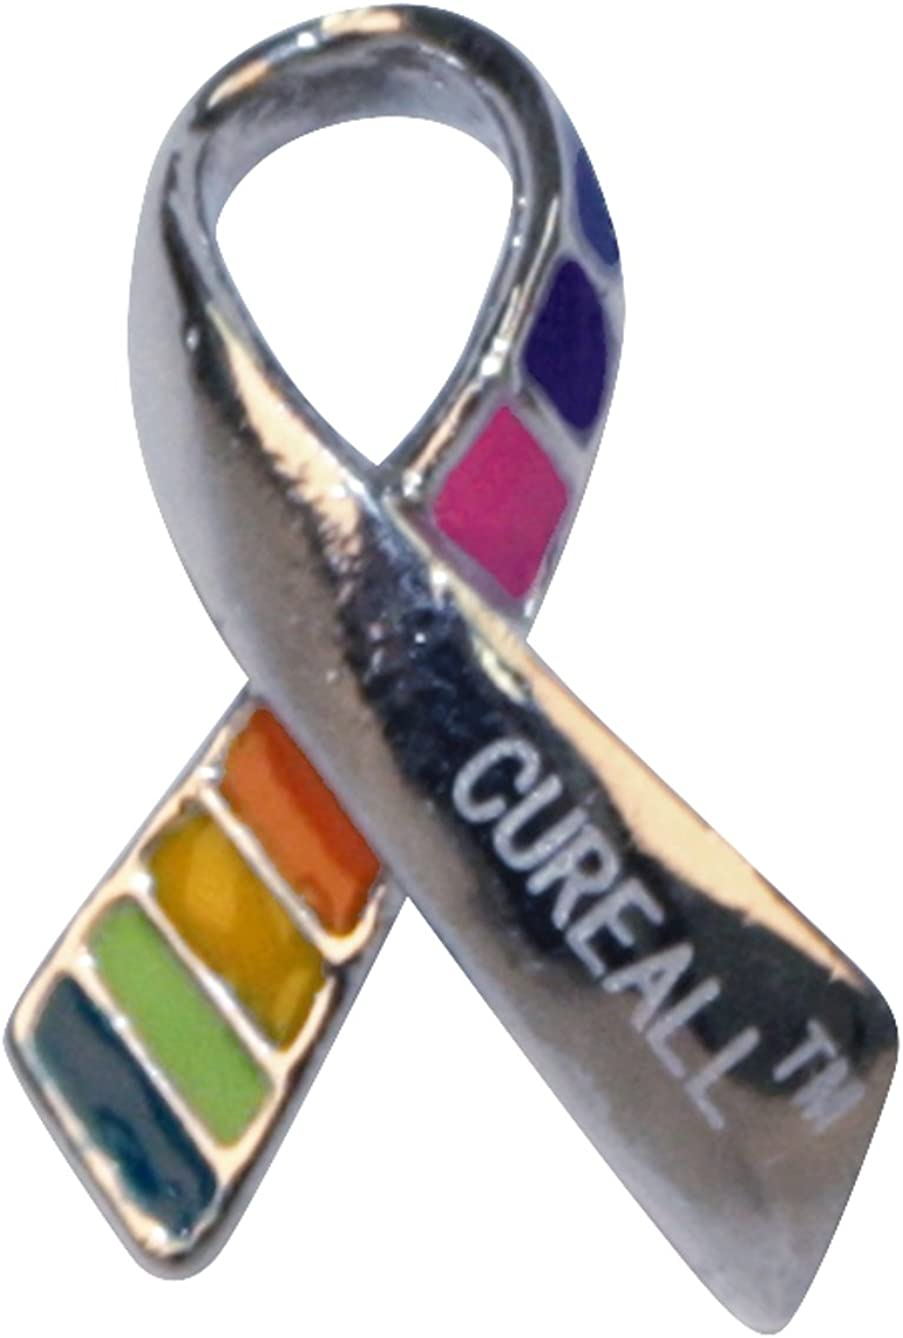 Cancer Remission Enamel Pins 12 Pieces Jewelry